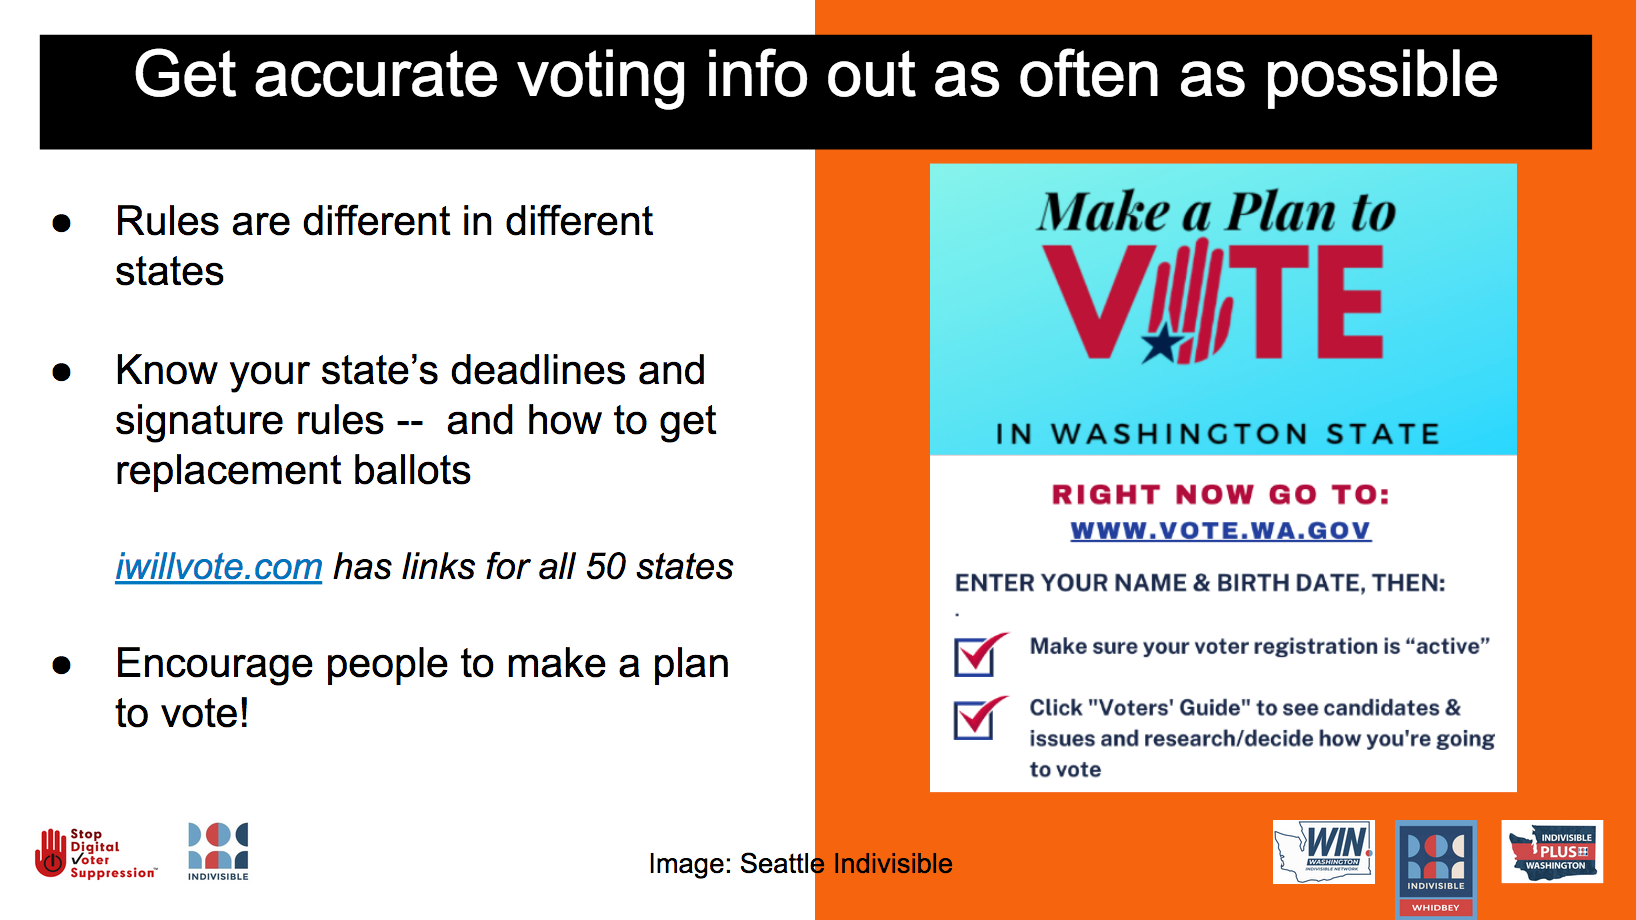 Get accurate voting info out as often as possible. Rules are different in different states. Know the info for your state!